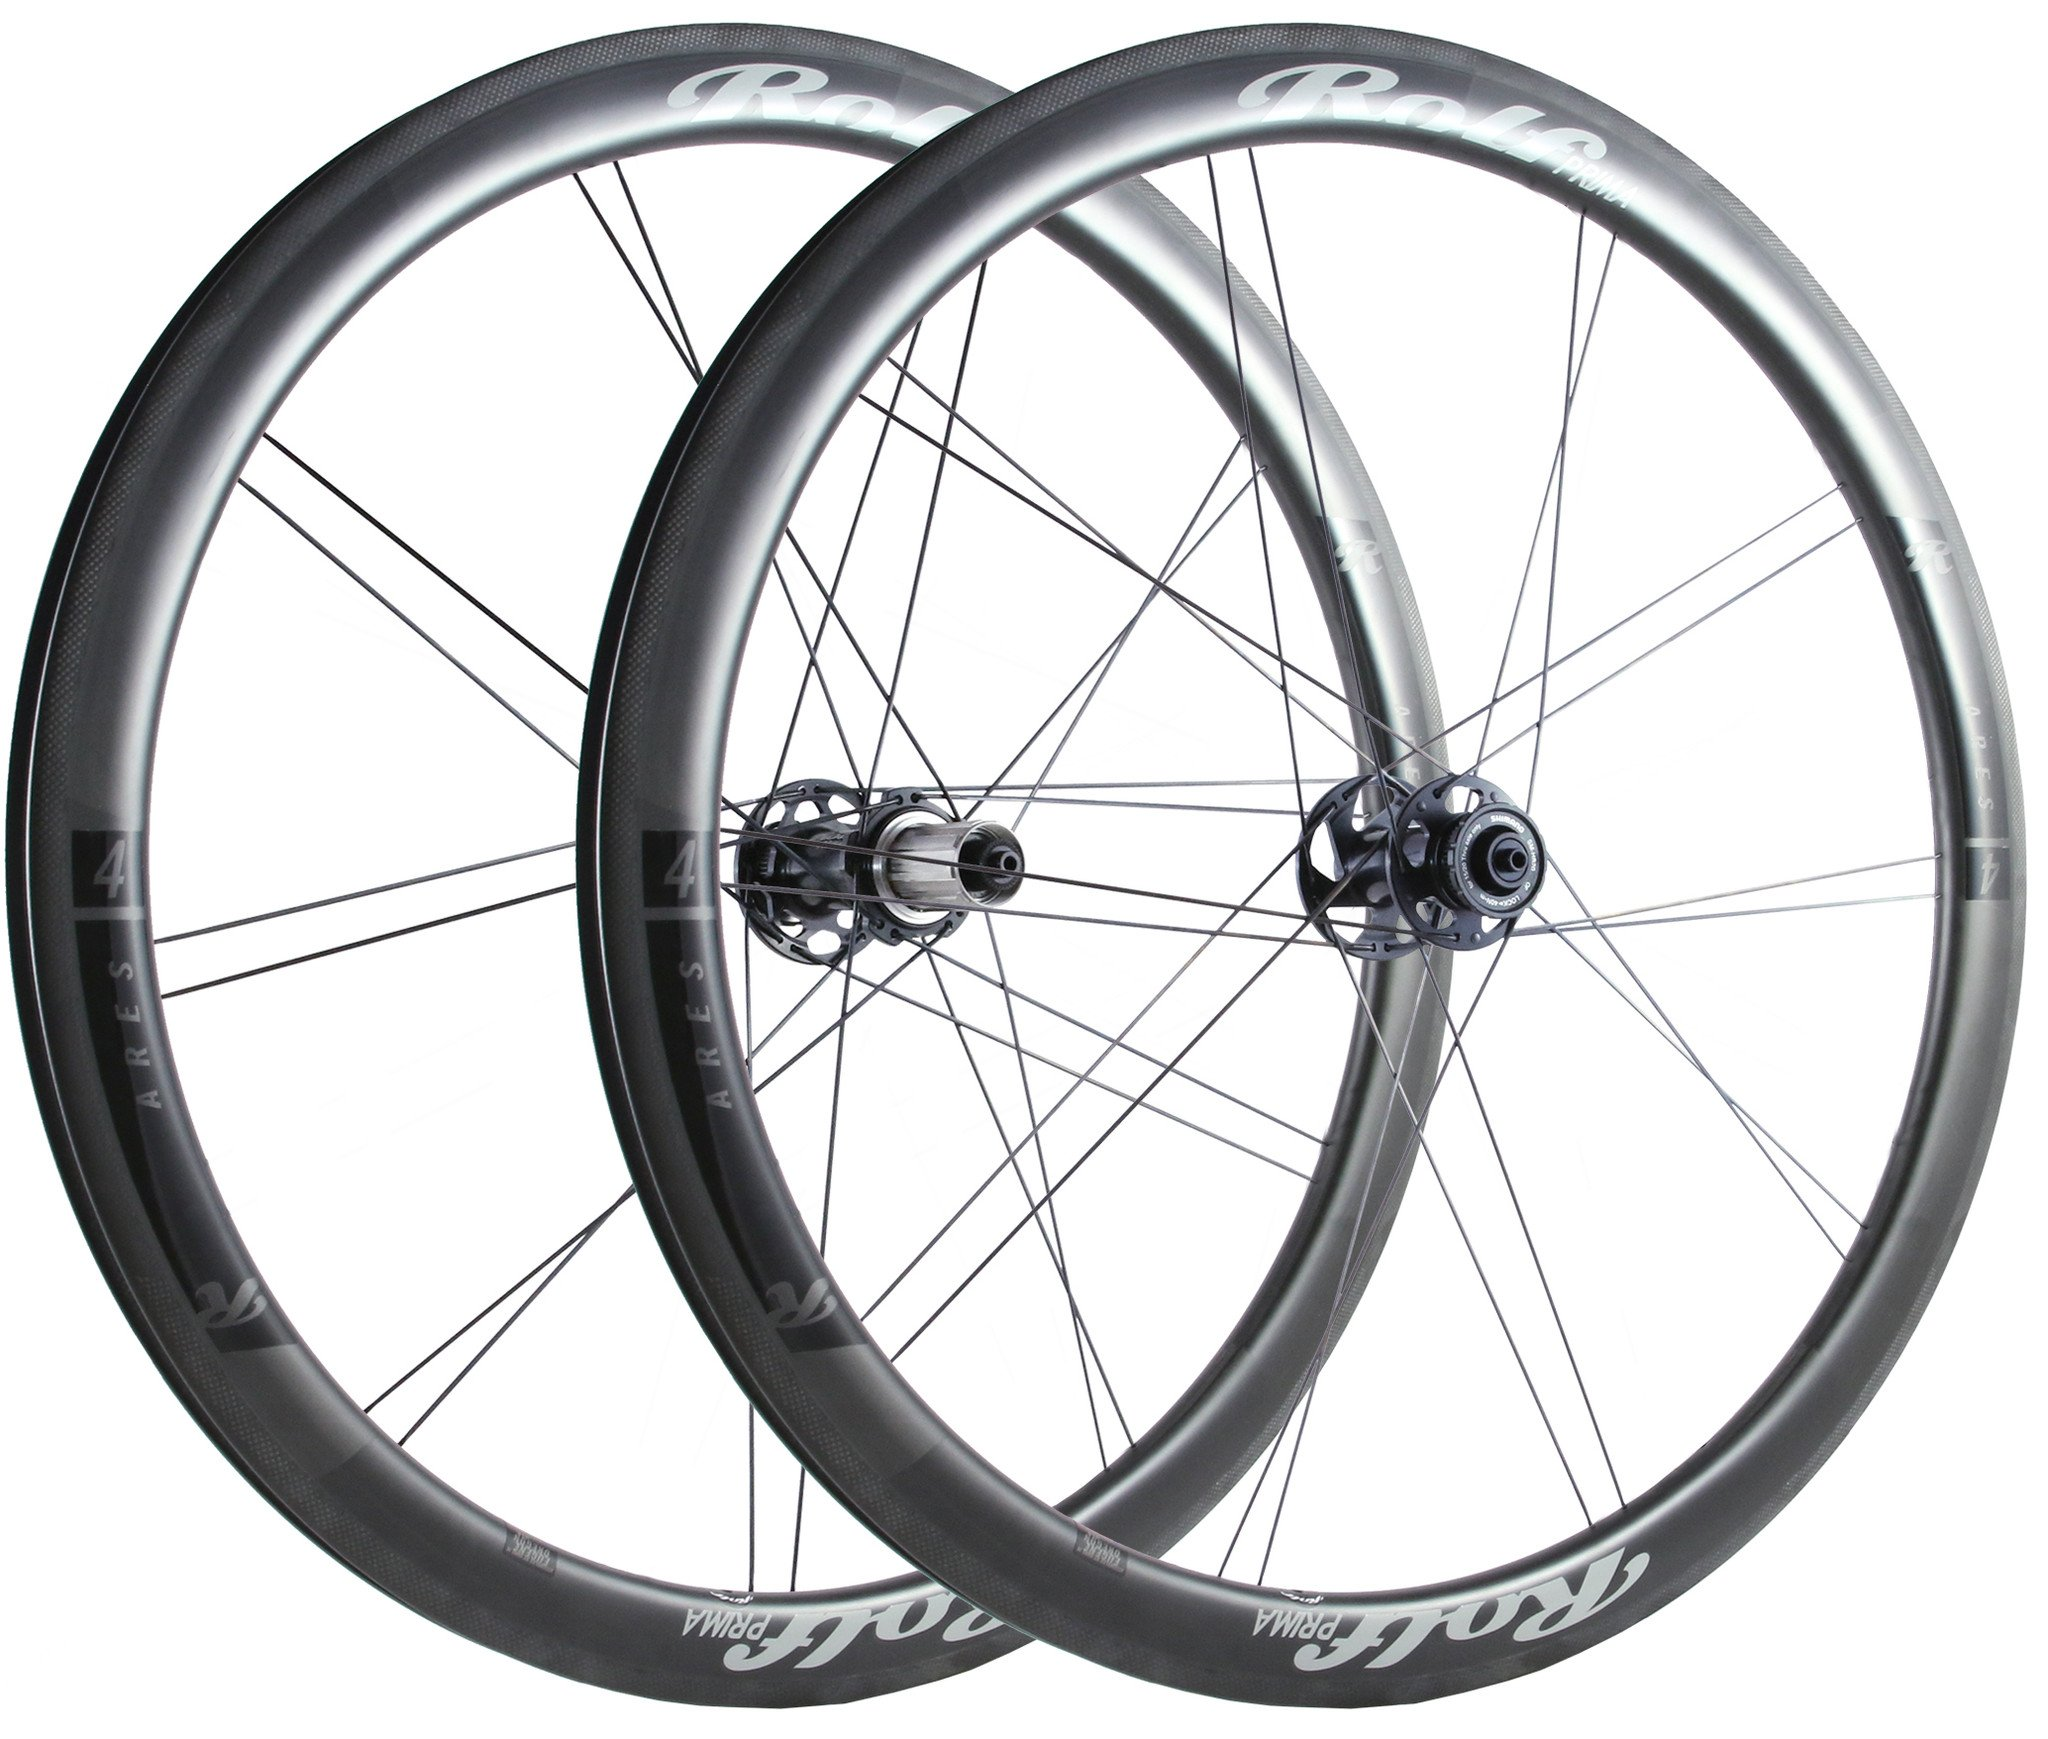 Rolf PRIMA - Carbon Ares4 disc Rolf PRIMA - Carbon Ares4 disc